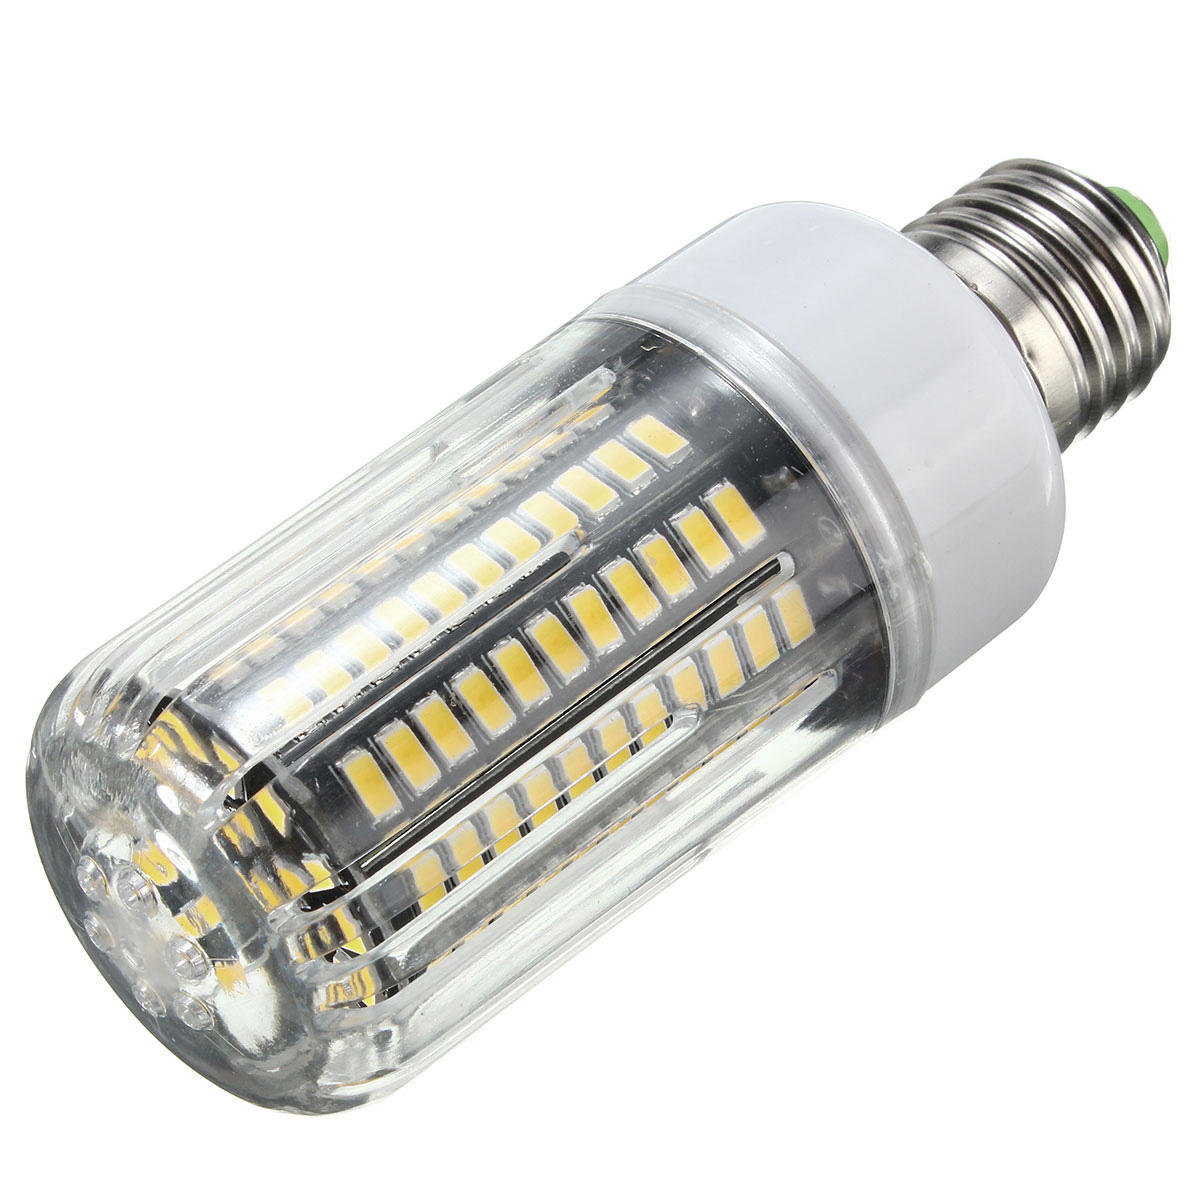 E27 E14 E12E E17 B22 15W 130 SMD 5736 LED Pure White Warm White Cover Corn Bulb AC85 265V - 11